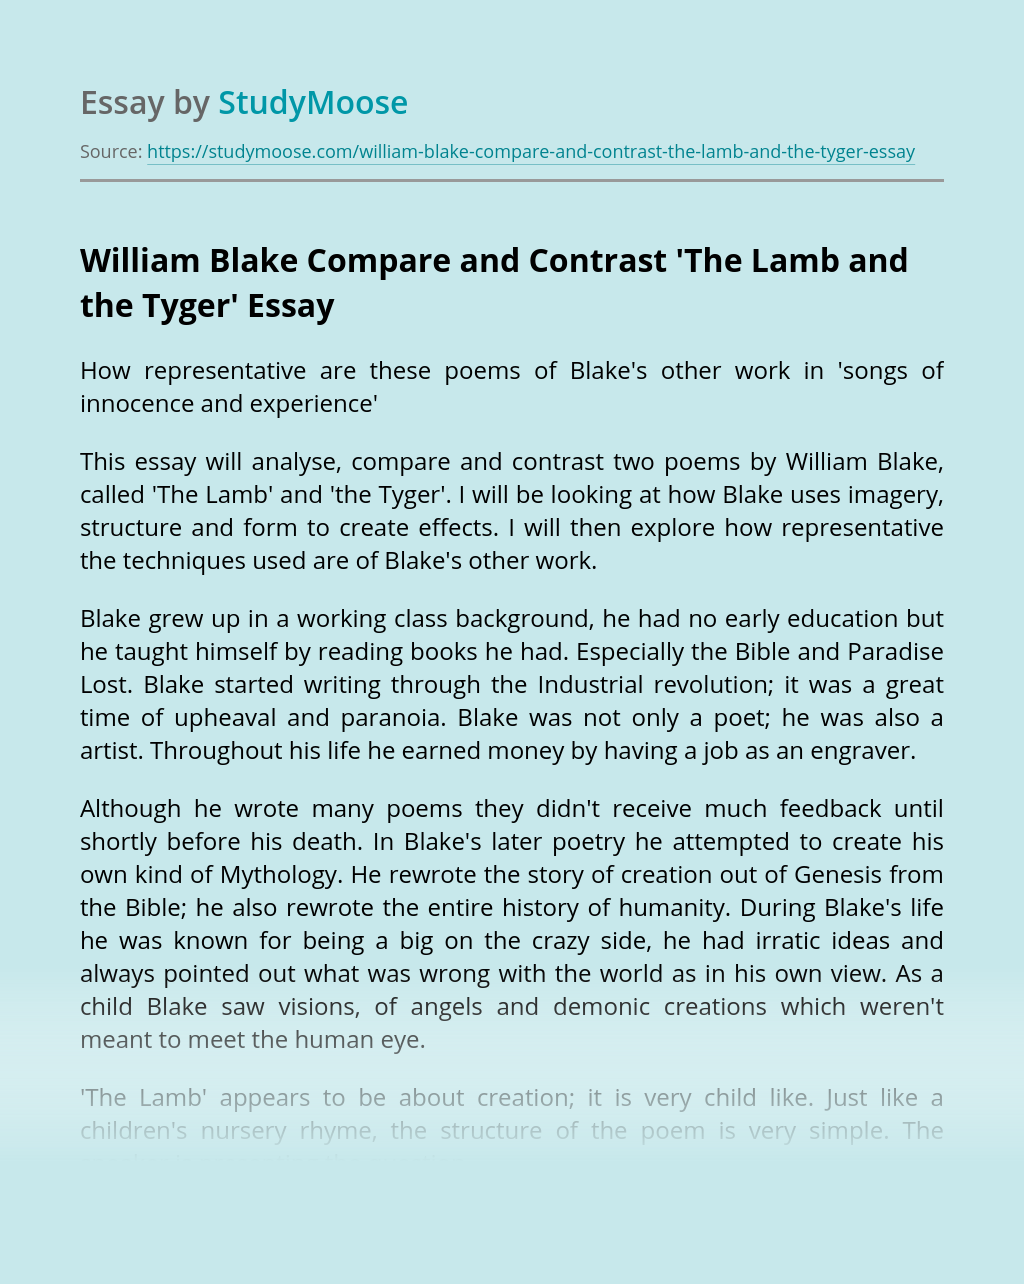 William Blake Compare and Contrast 'The Lamb and the Tyger'